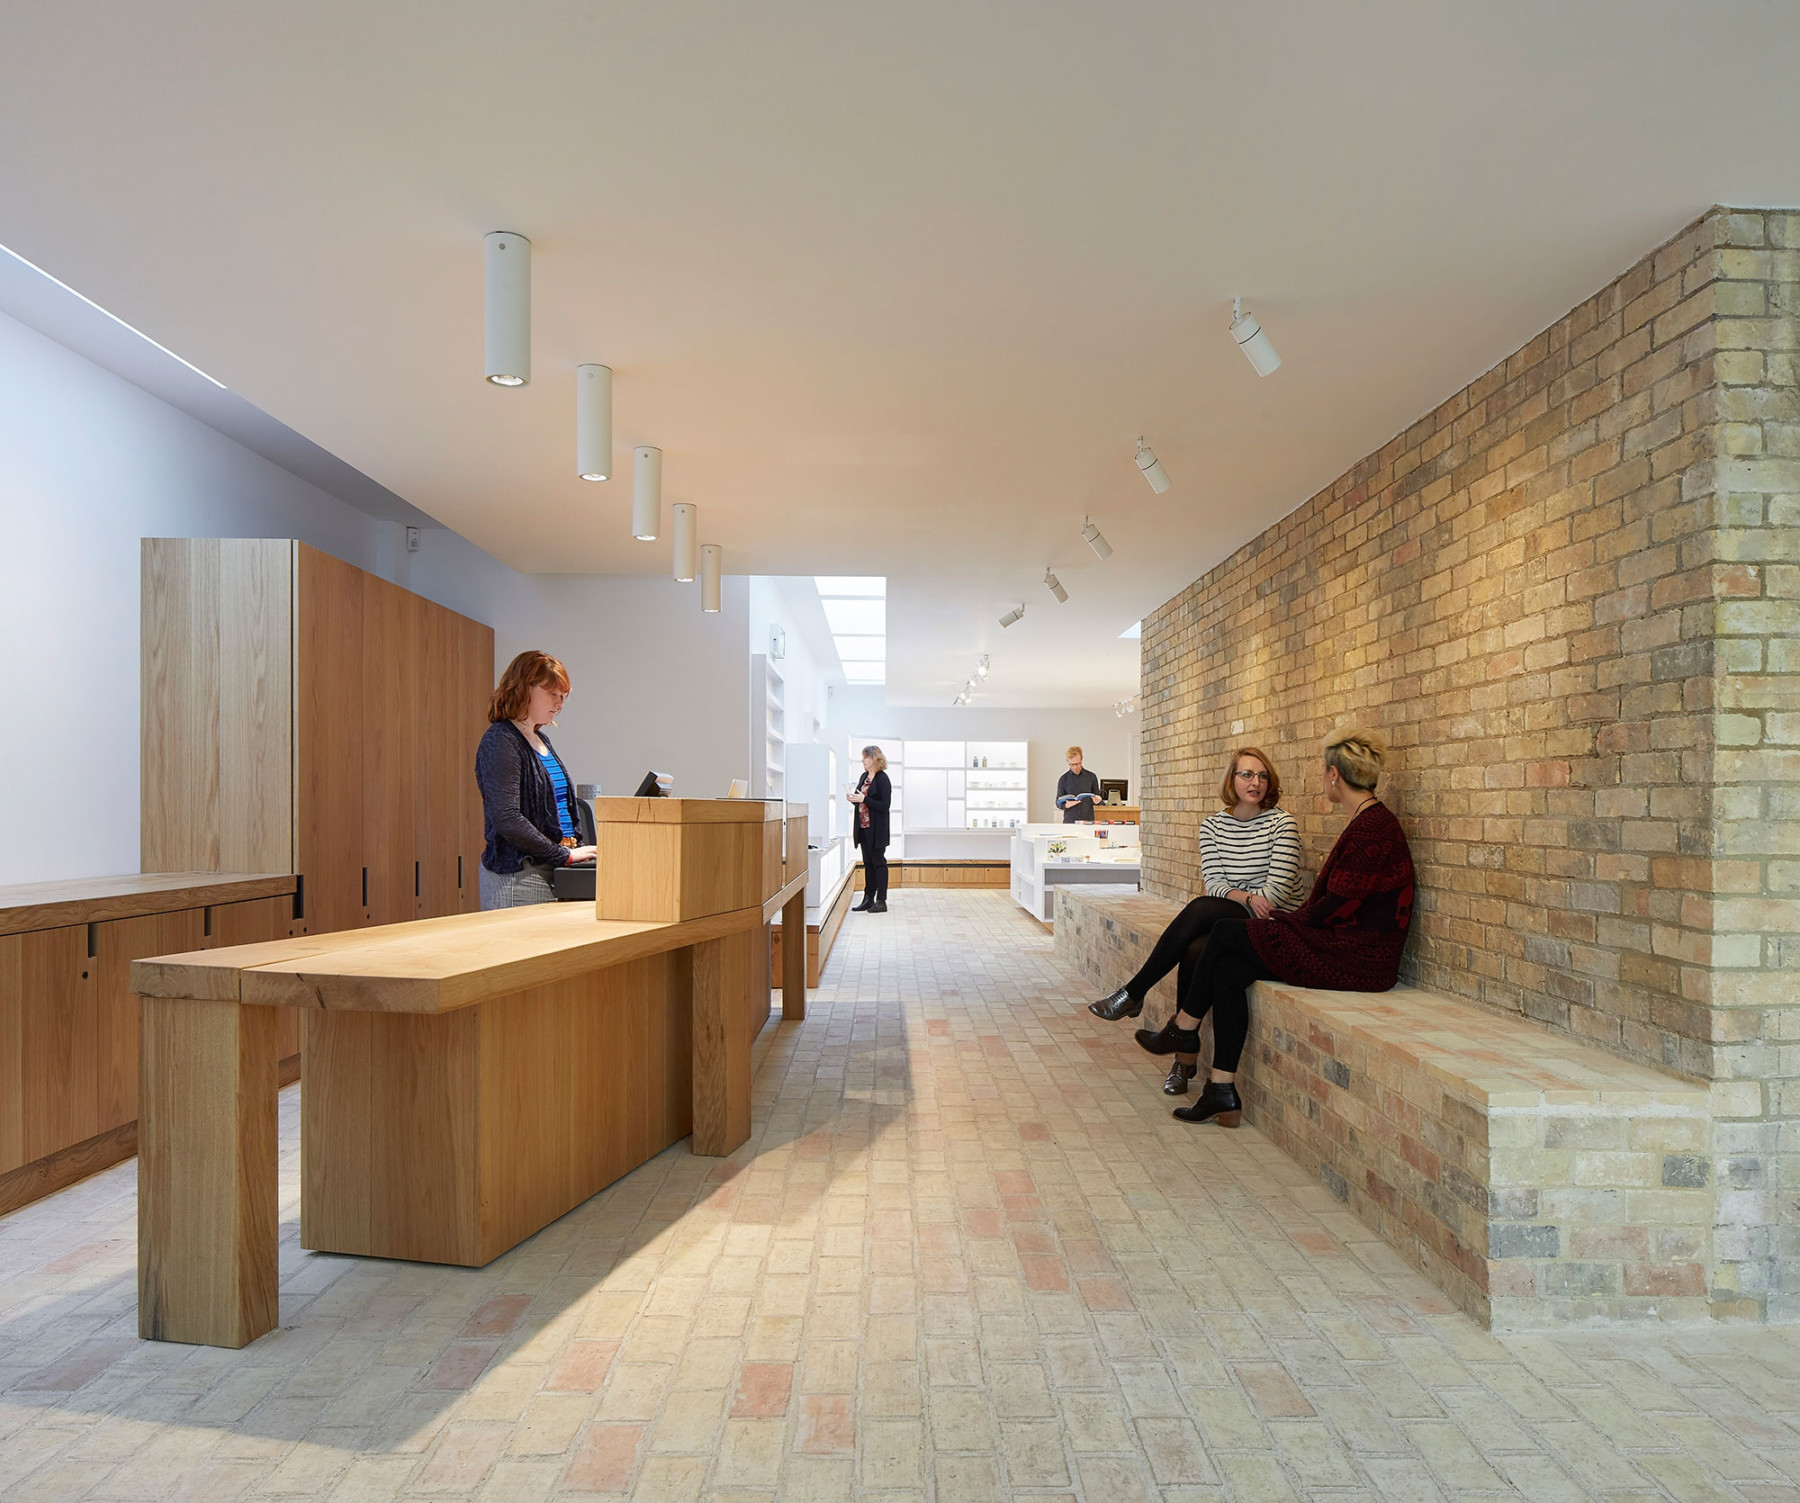 Jamie-Fobert-Architects Kettle's-Yard Cambridge Hufton+Crow 004